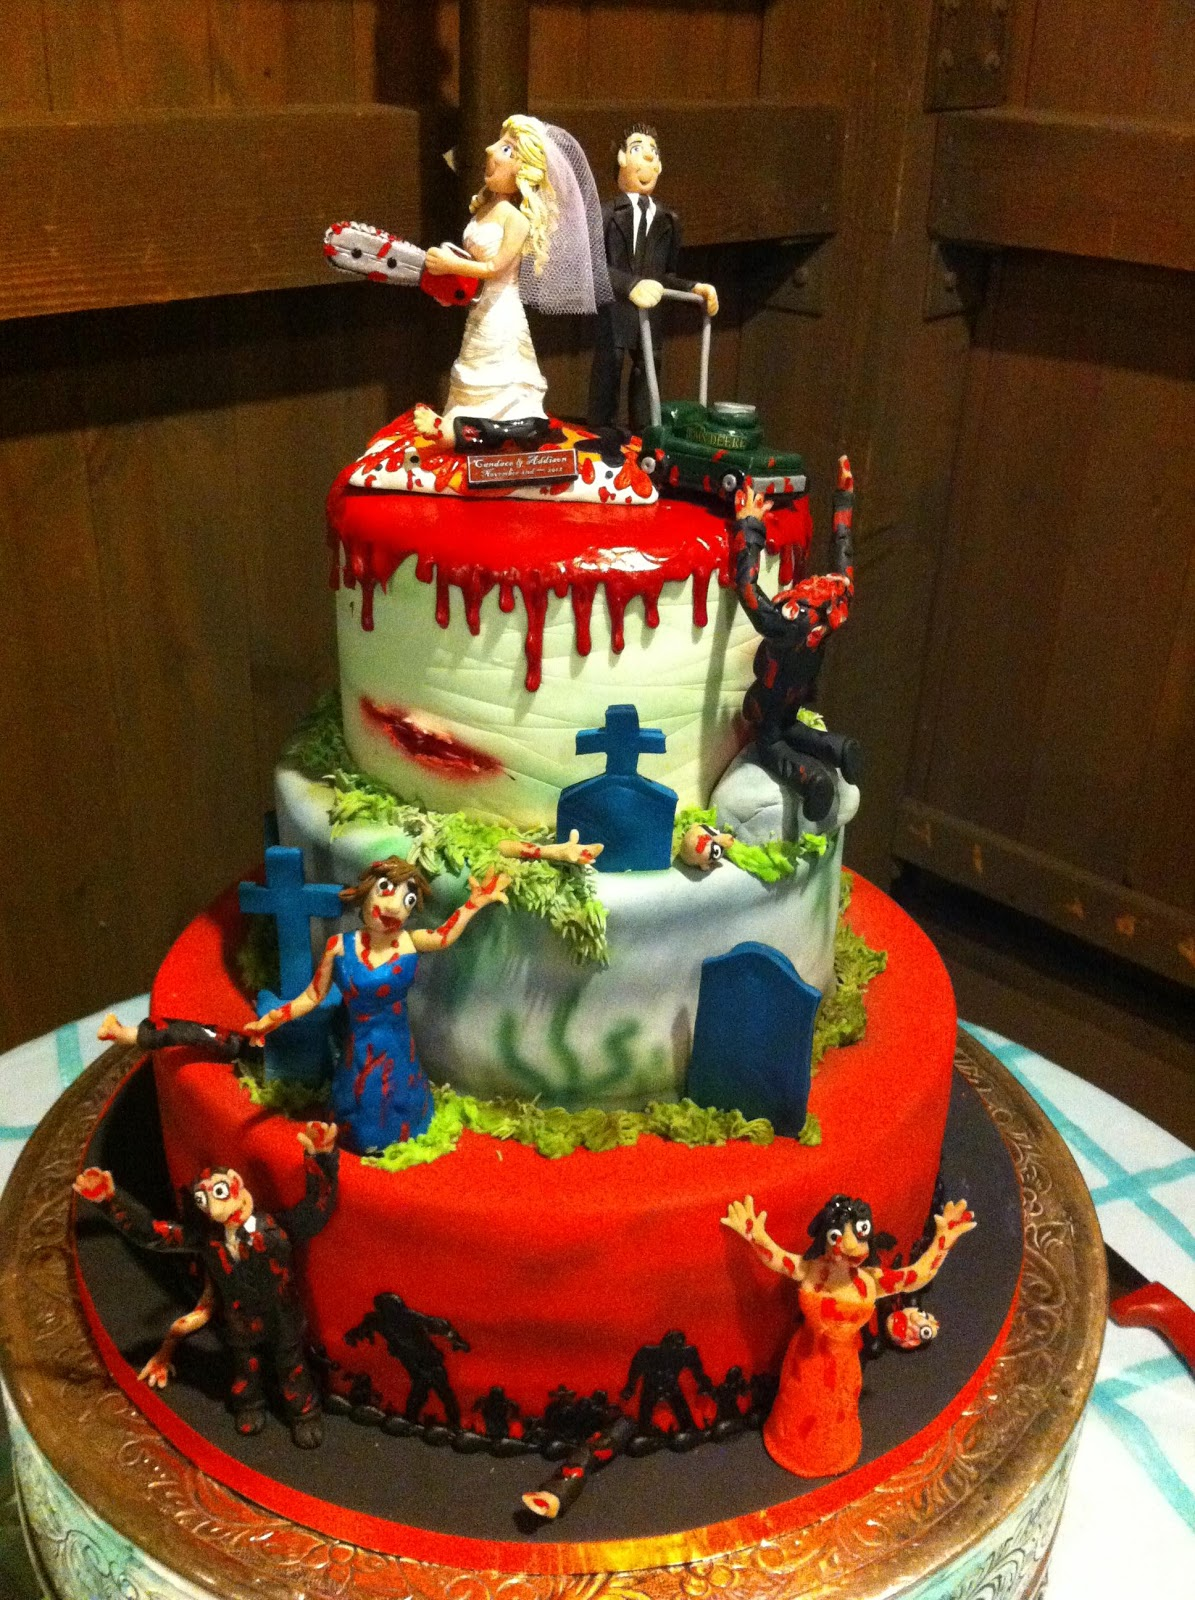 Pleasing Zombie Wedding Cakes Decoration Ideas Little Birthday Cakes Personalised Birthday Cards Paralily Jamesorg